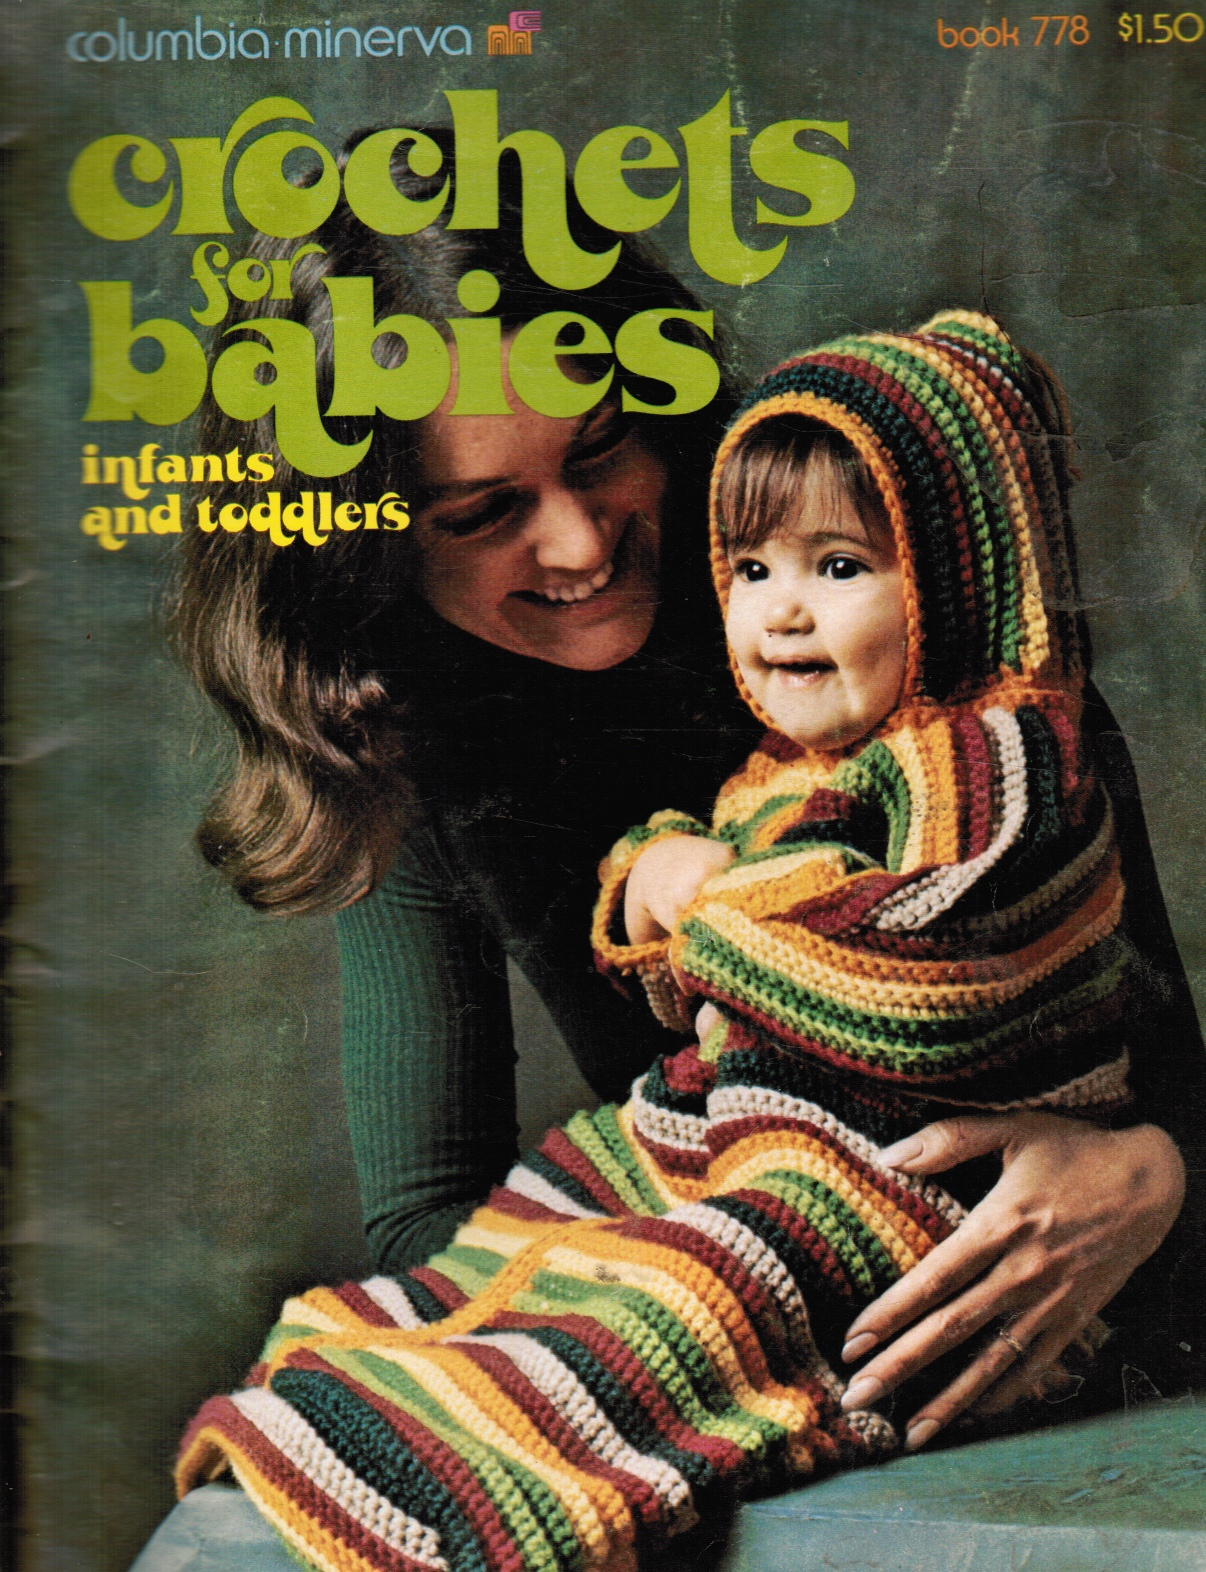 Image for Crochets for Babies Infants and Toddlers